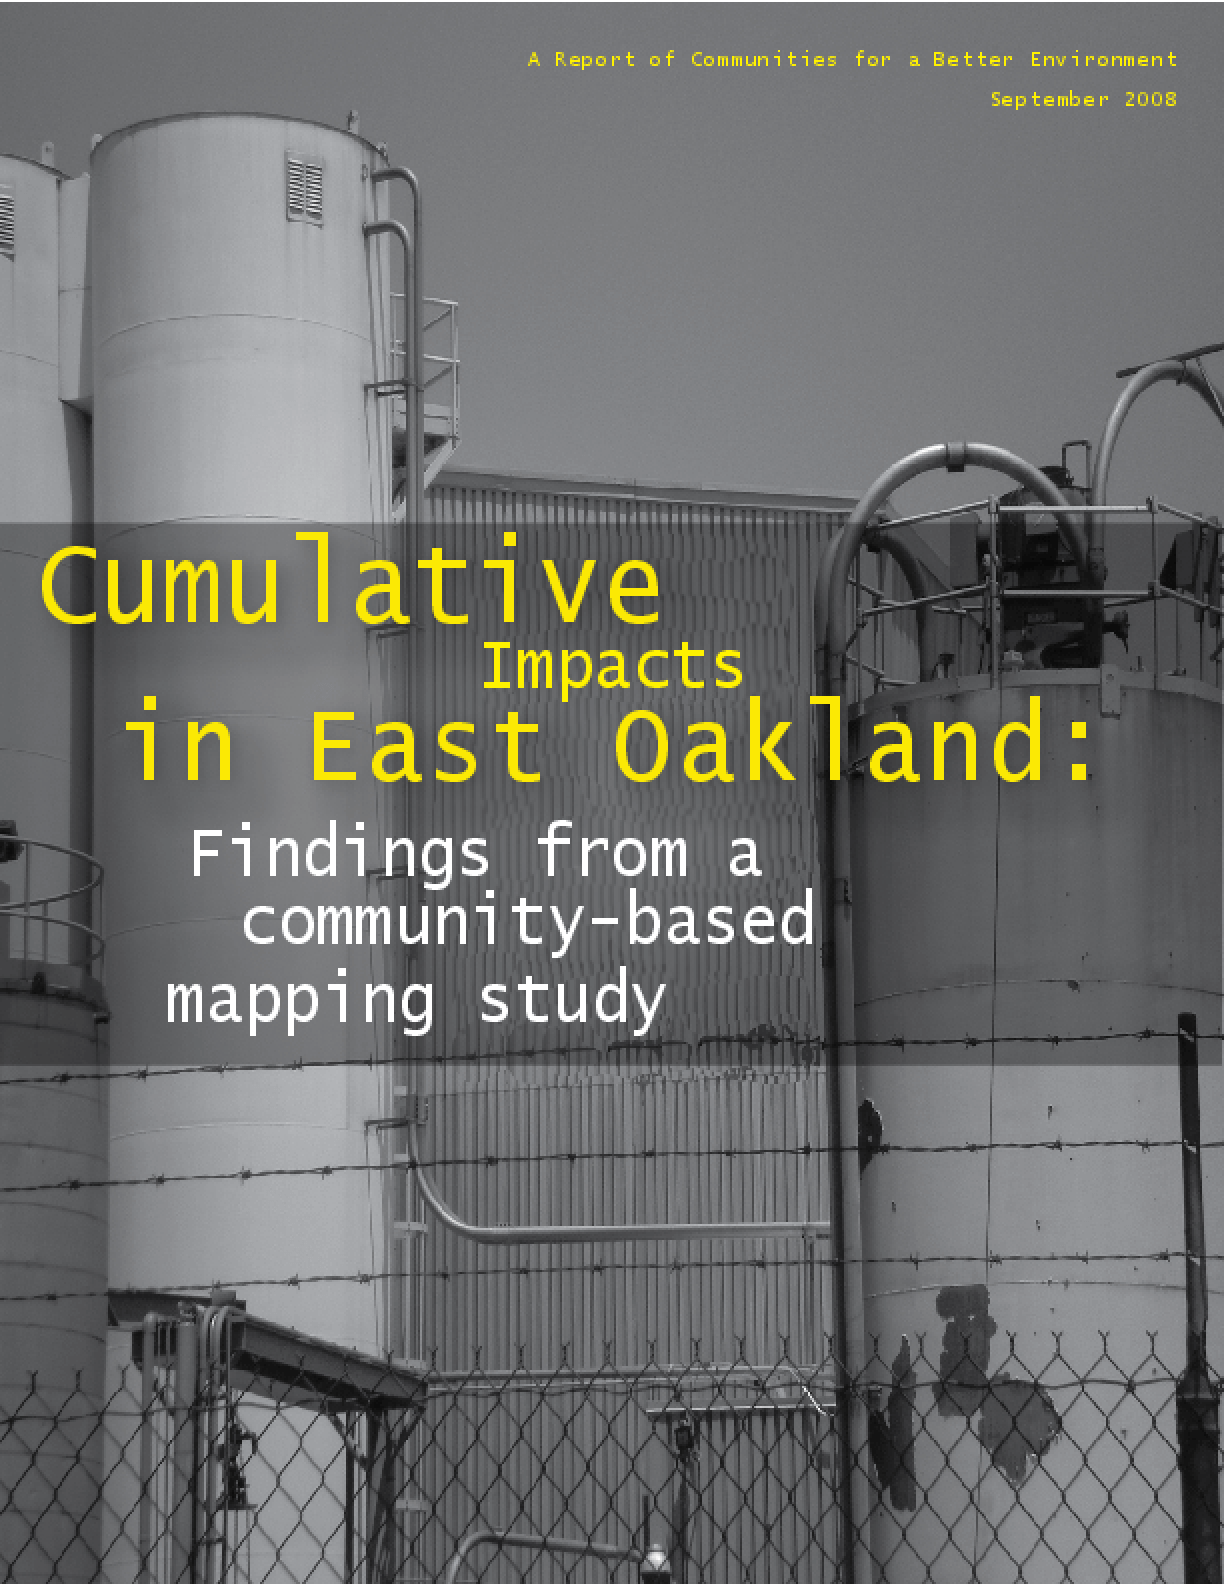 Cumulative Impacts in East Oakland: Findings from a Community-Based Mapping Study Communities for a Better Environment